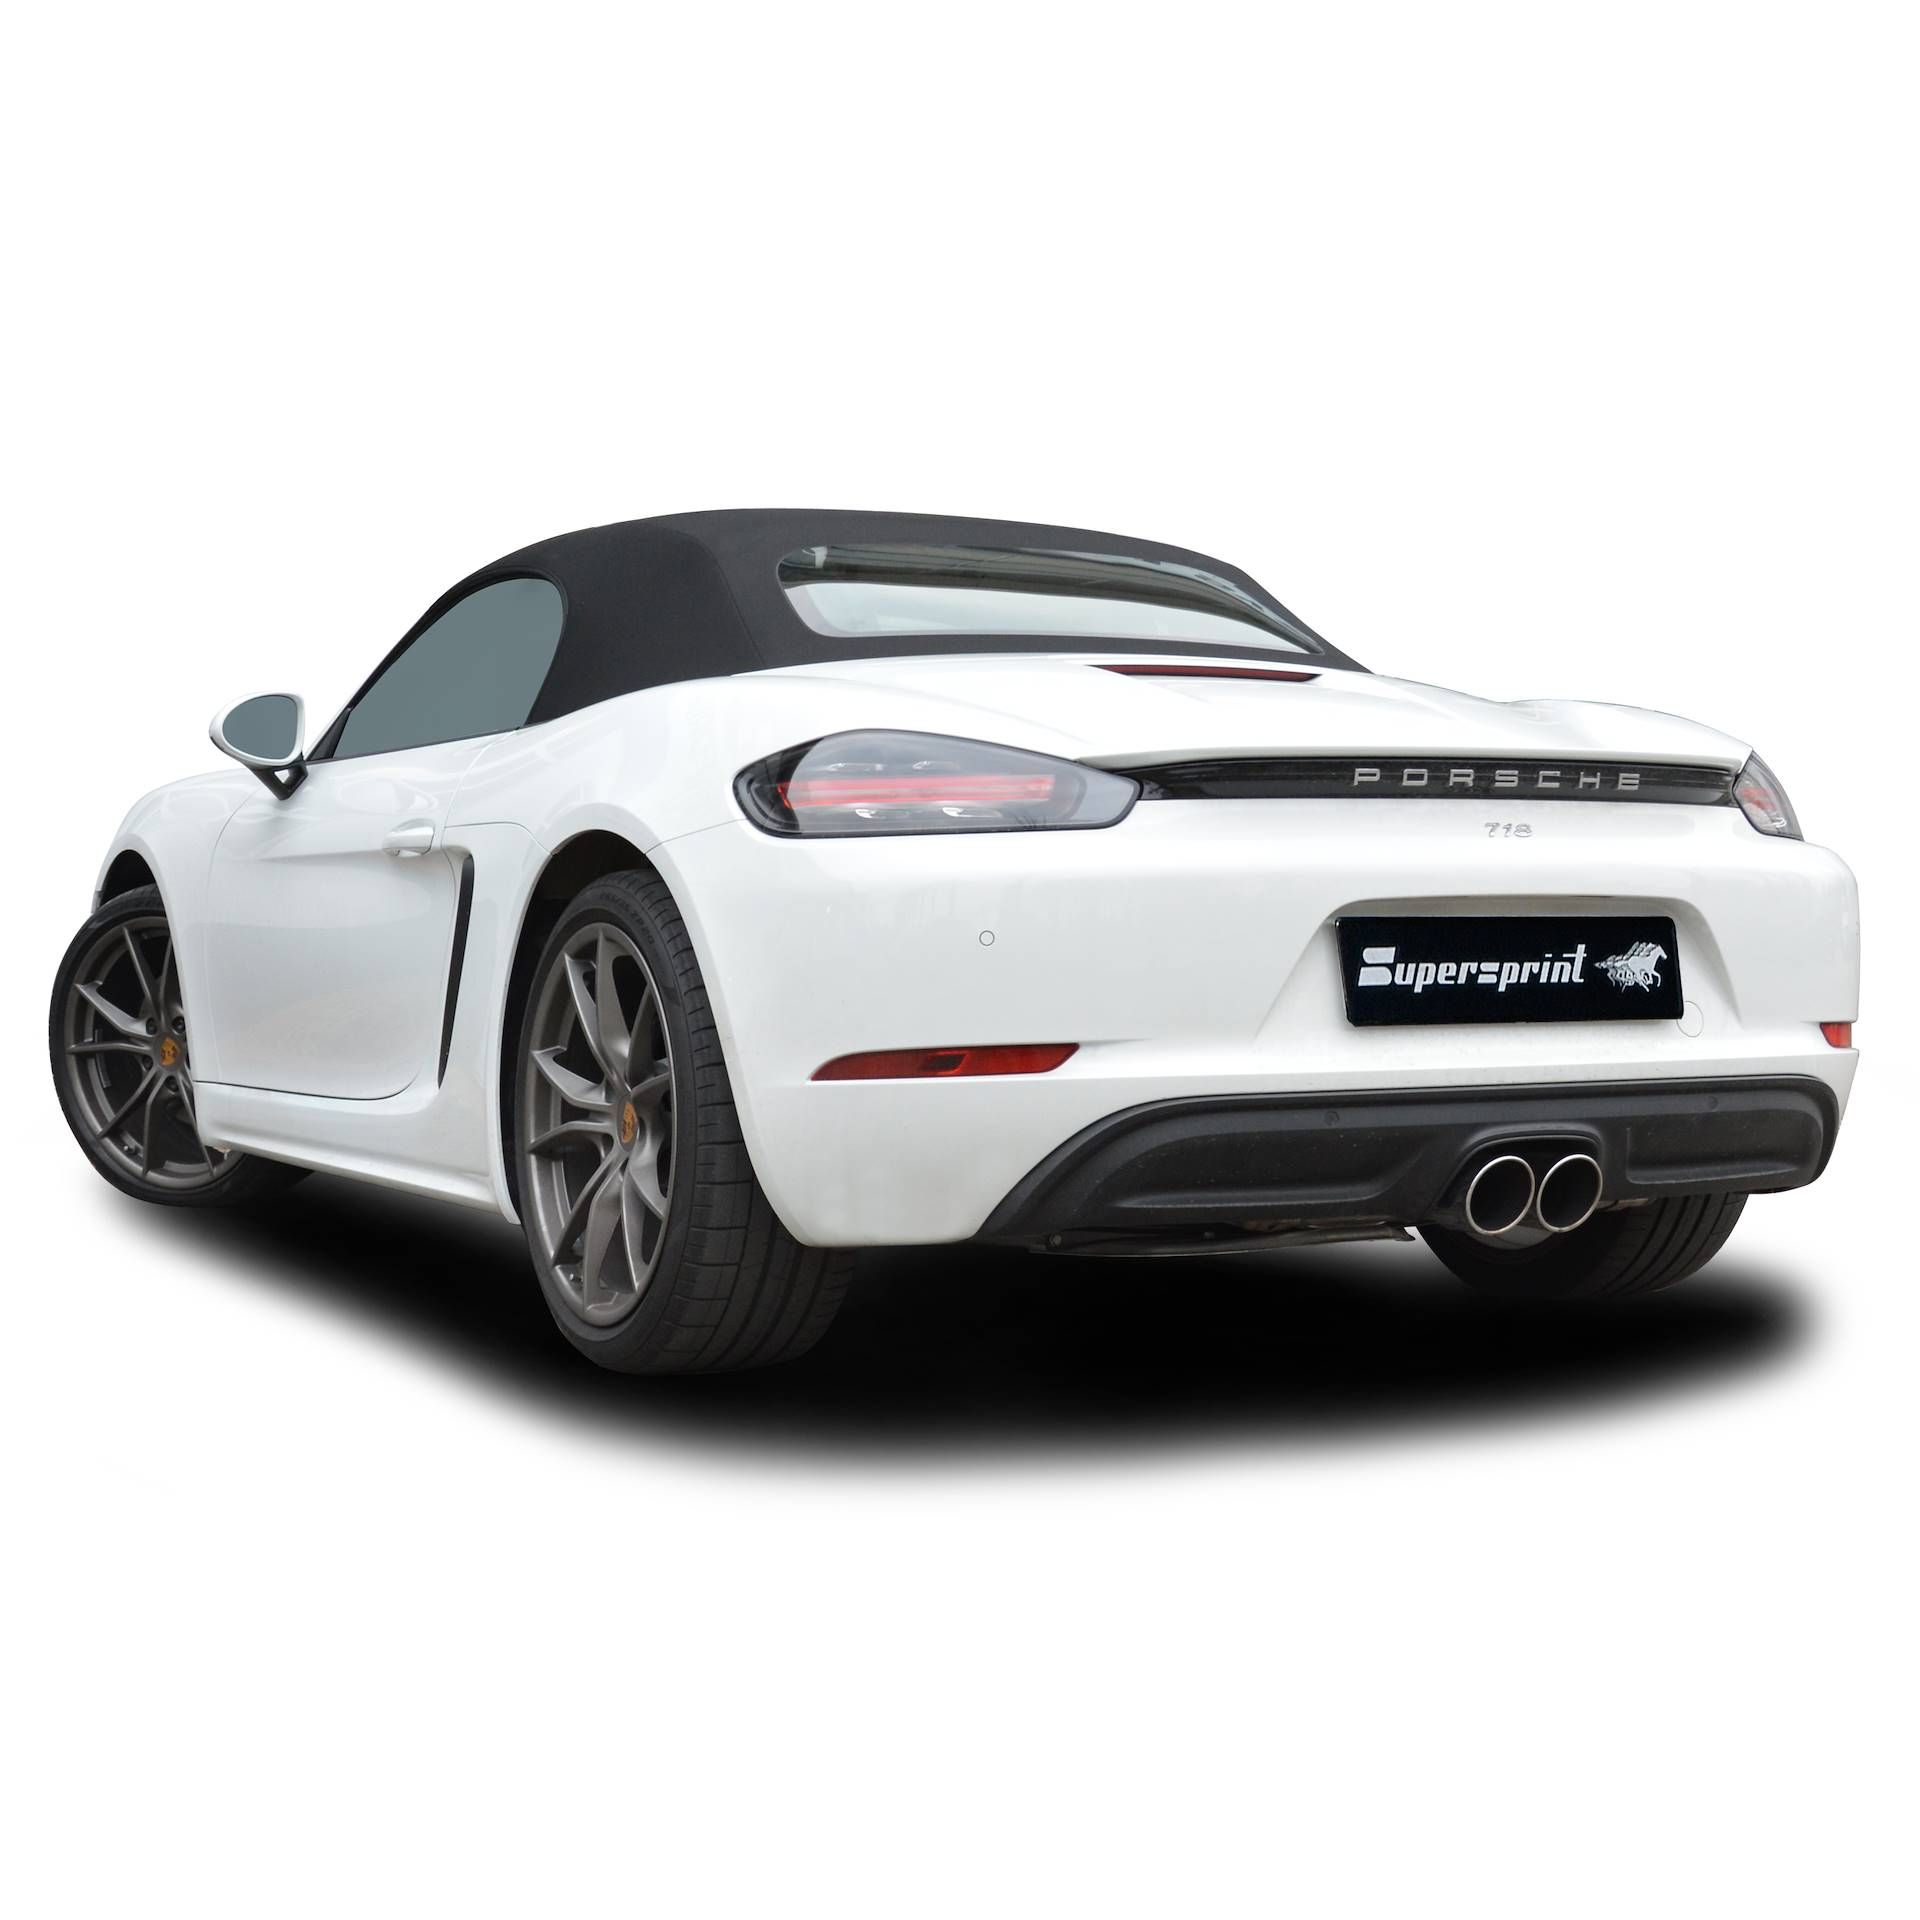 Supersprint exhaust system for PORSCHE 718 BOXSTER 2.0i Turbo (300 Hp) 2016 -> (with valve)